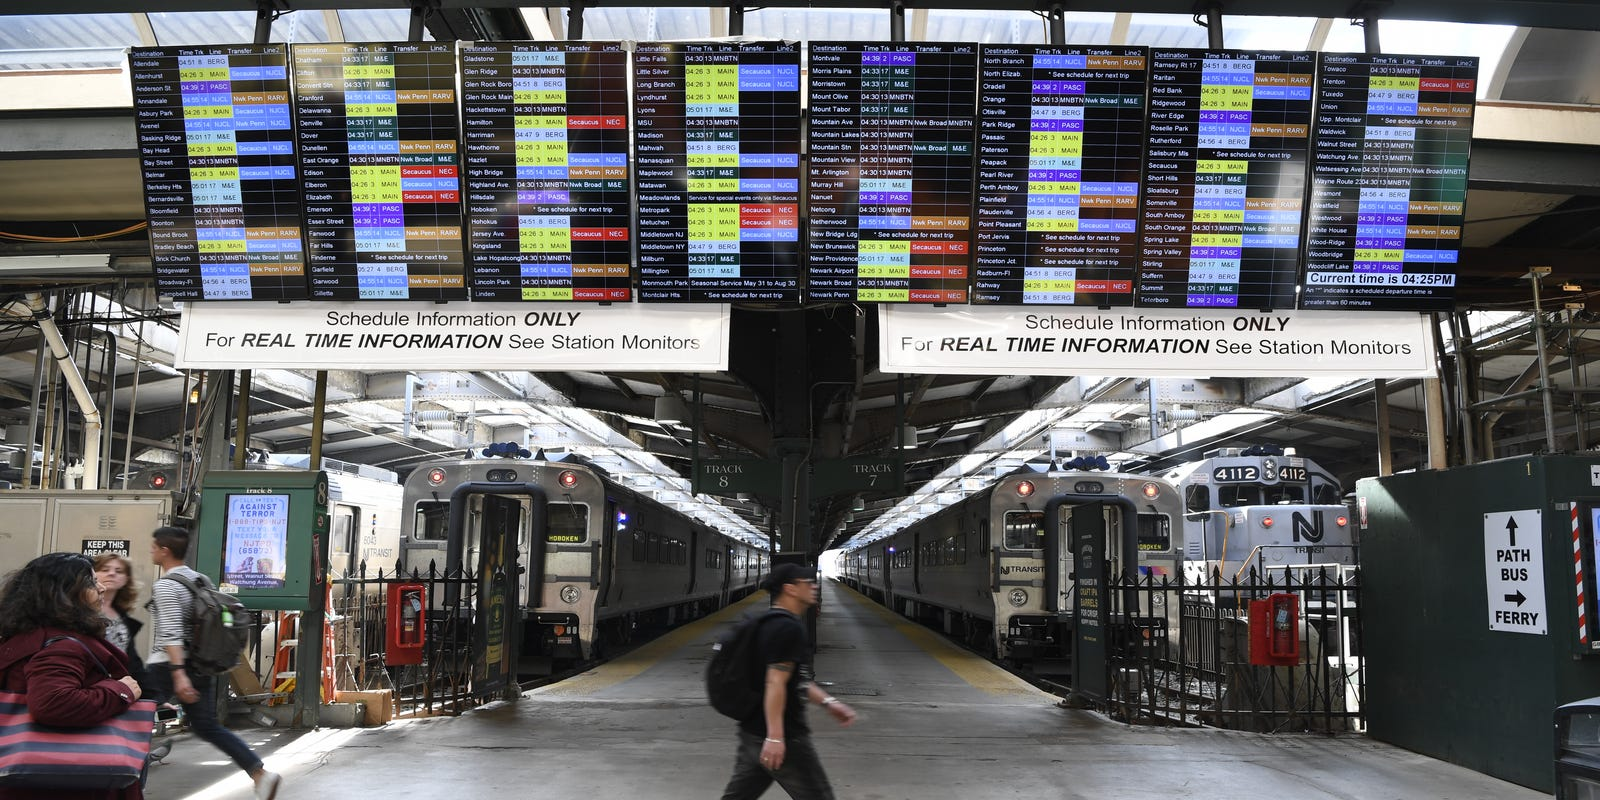 NJ Transit troubles: How Phil Murphy is facing pressure as